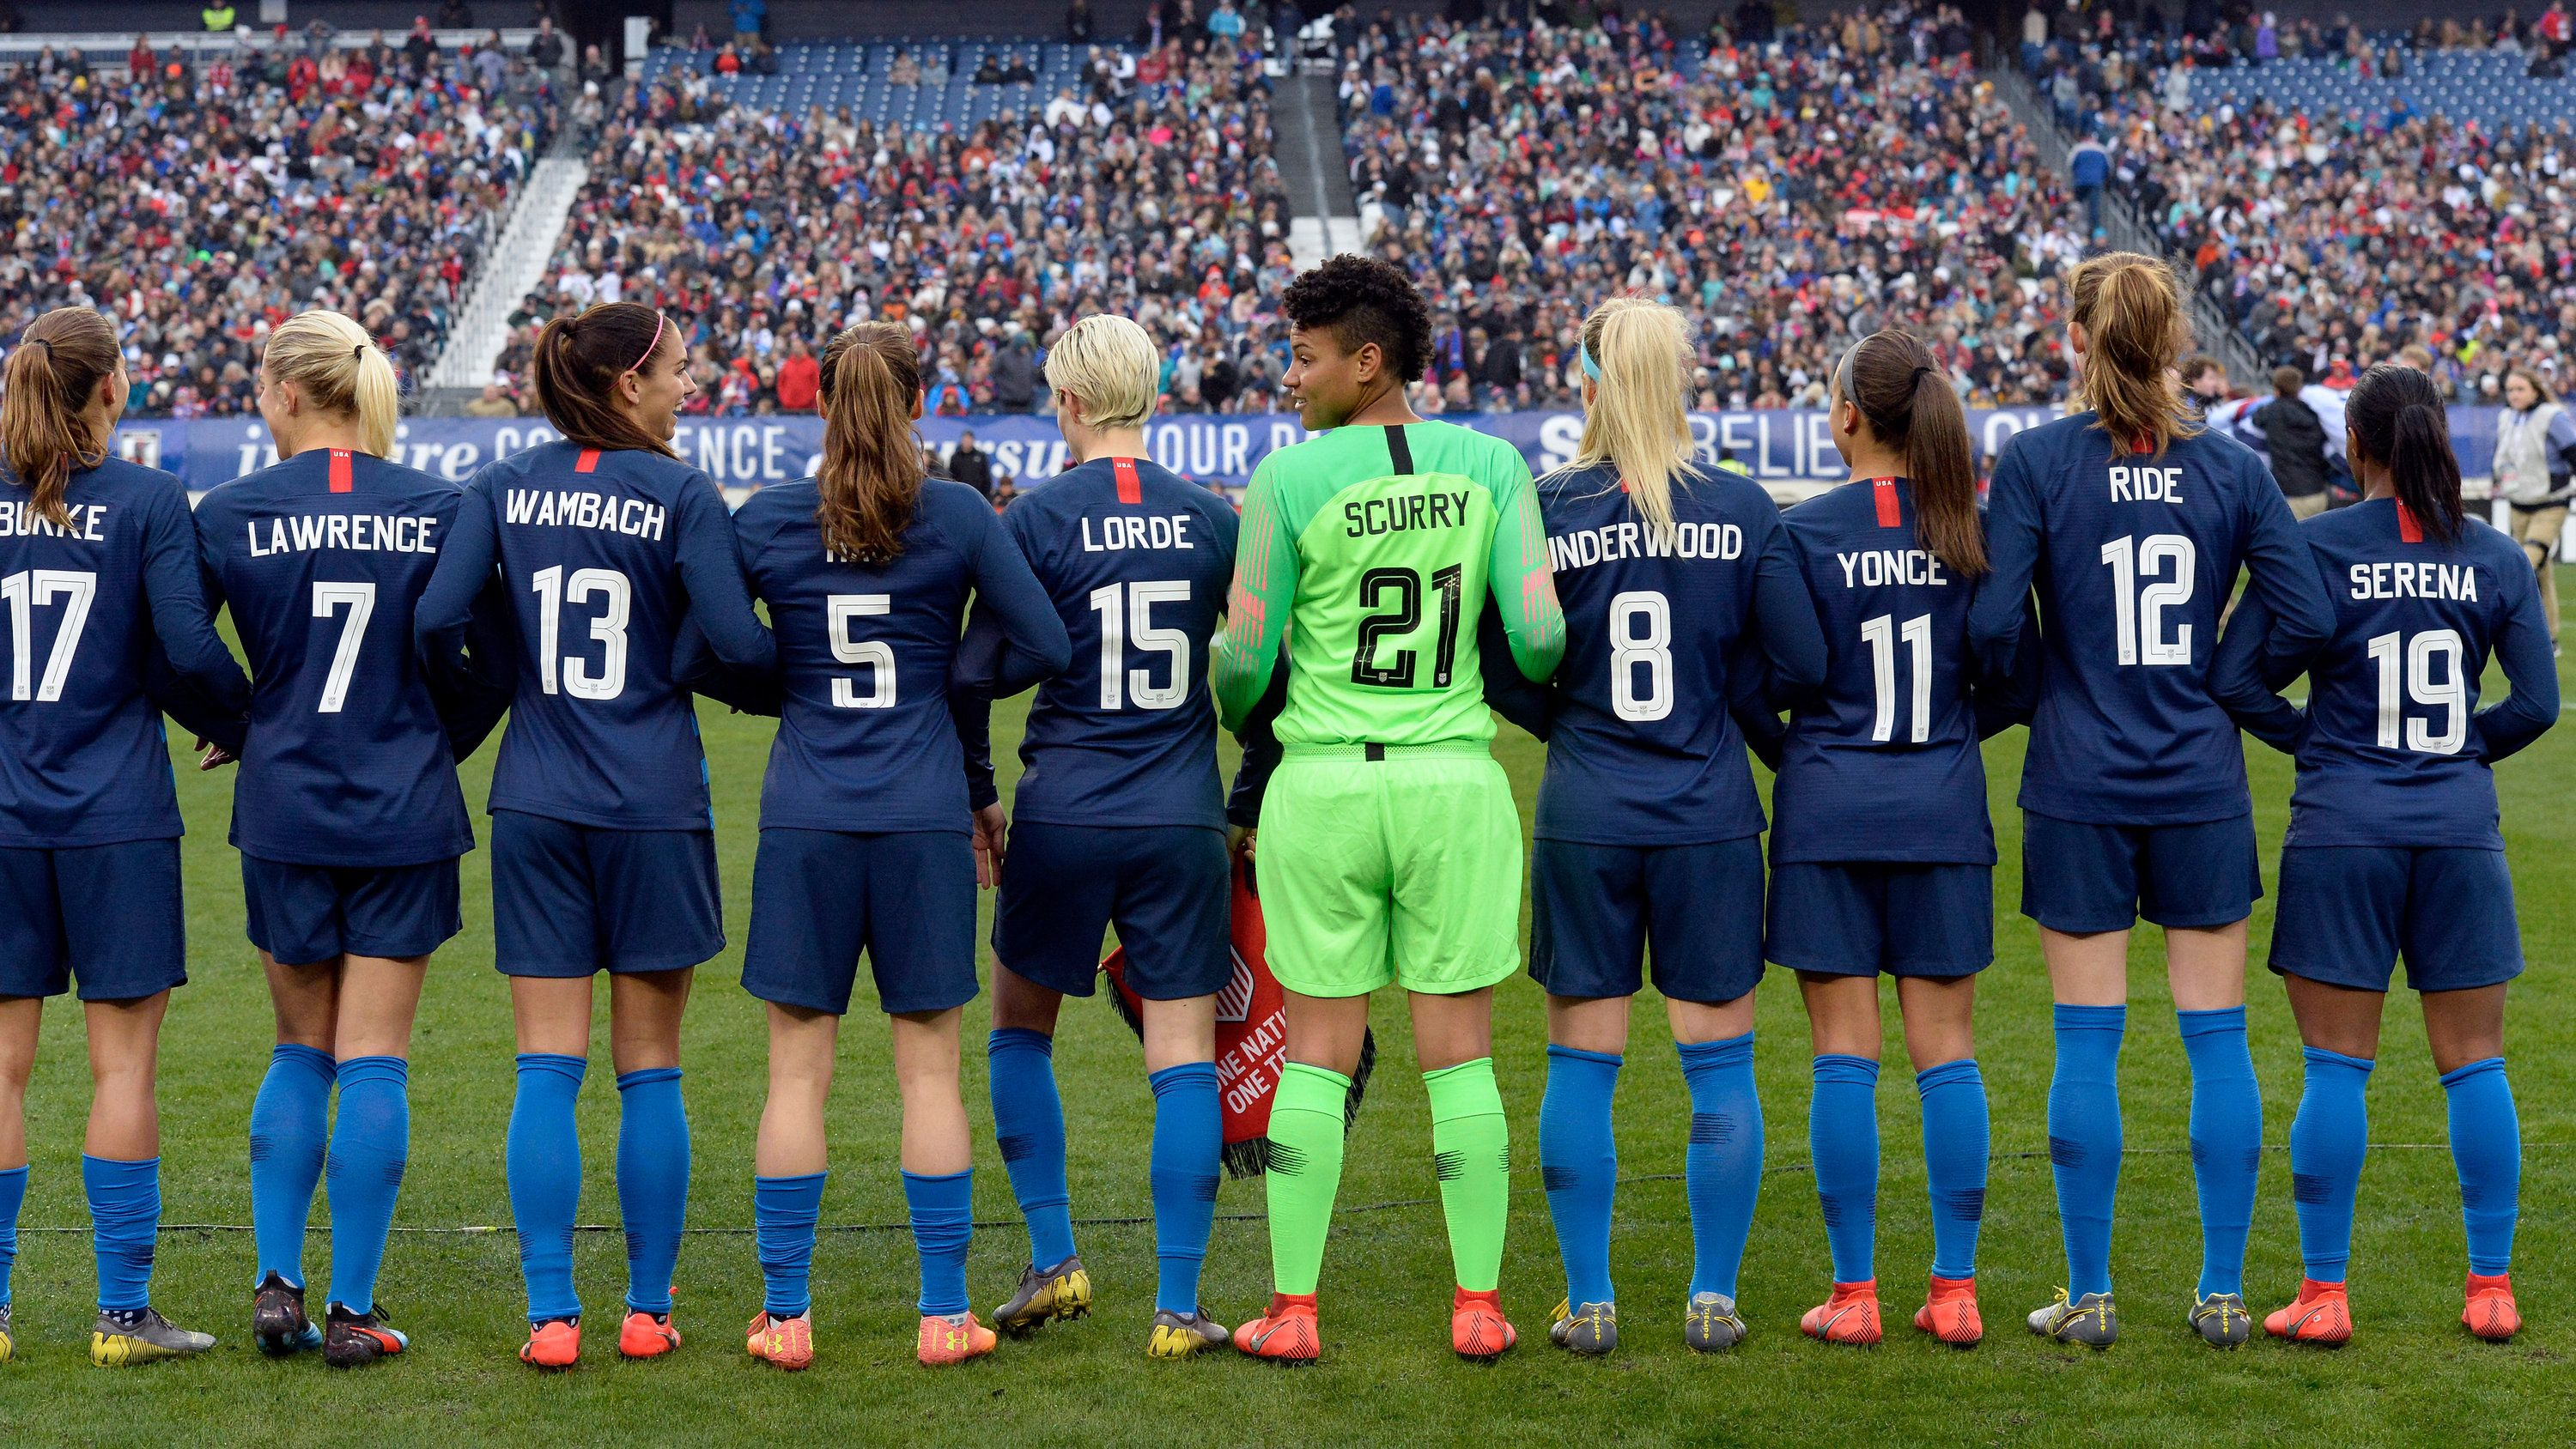 8 Times Women In Sports Fought For Equality Women S Soccer Team Womens Soccer Female Soccer Players